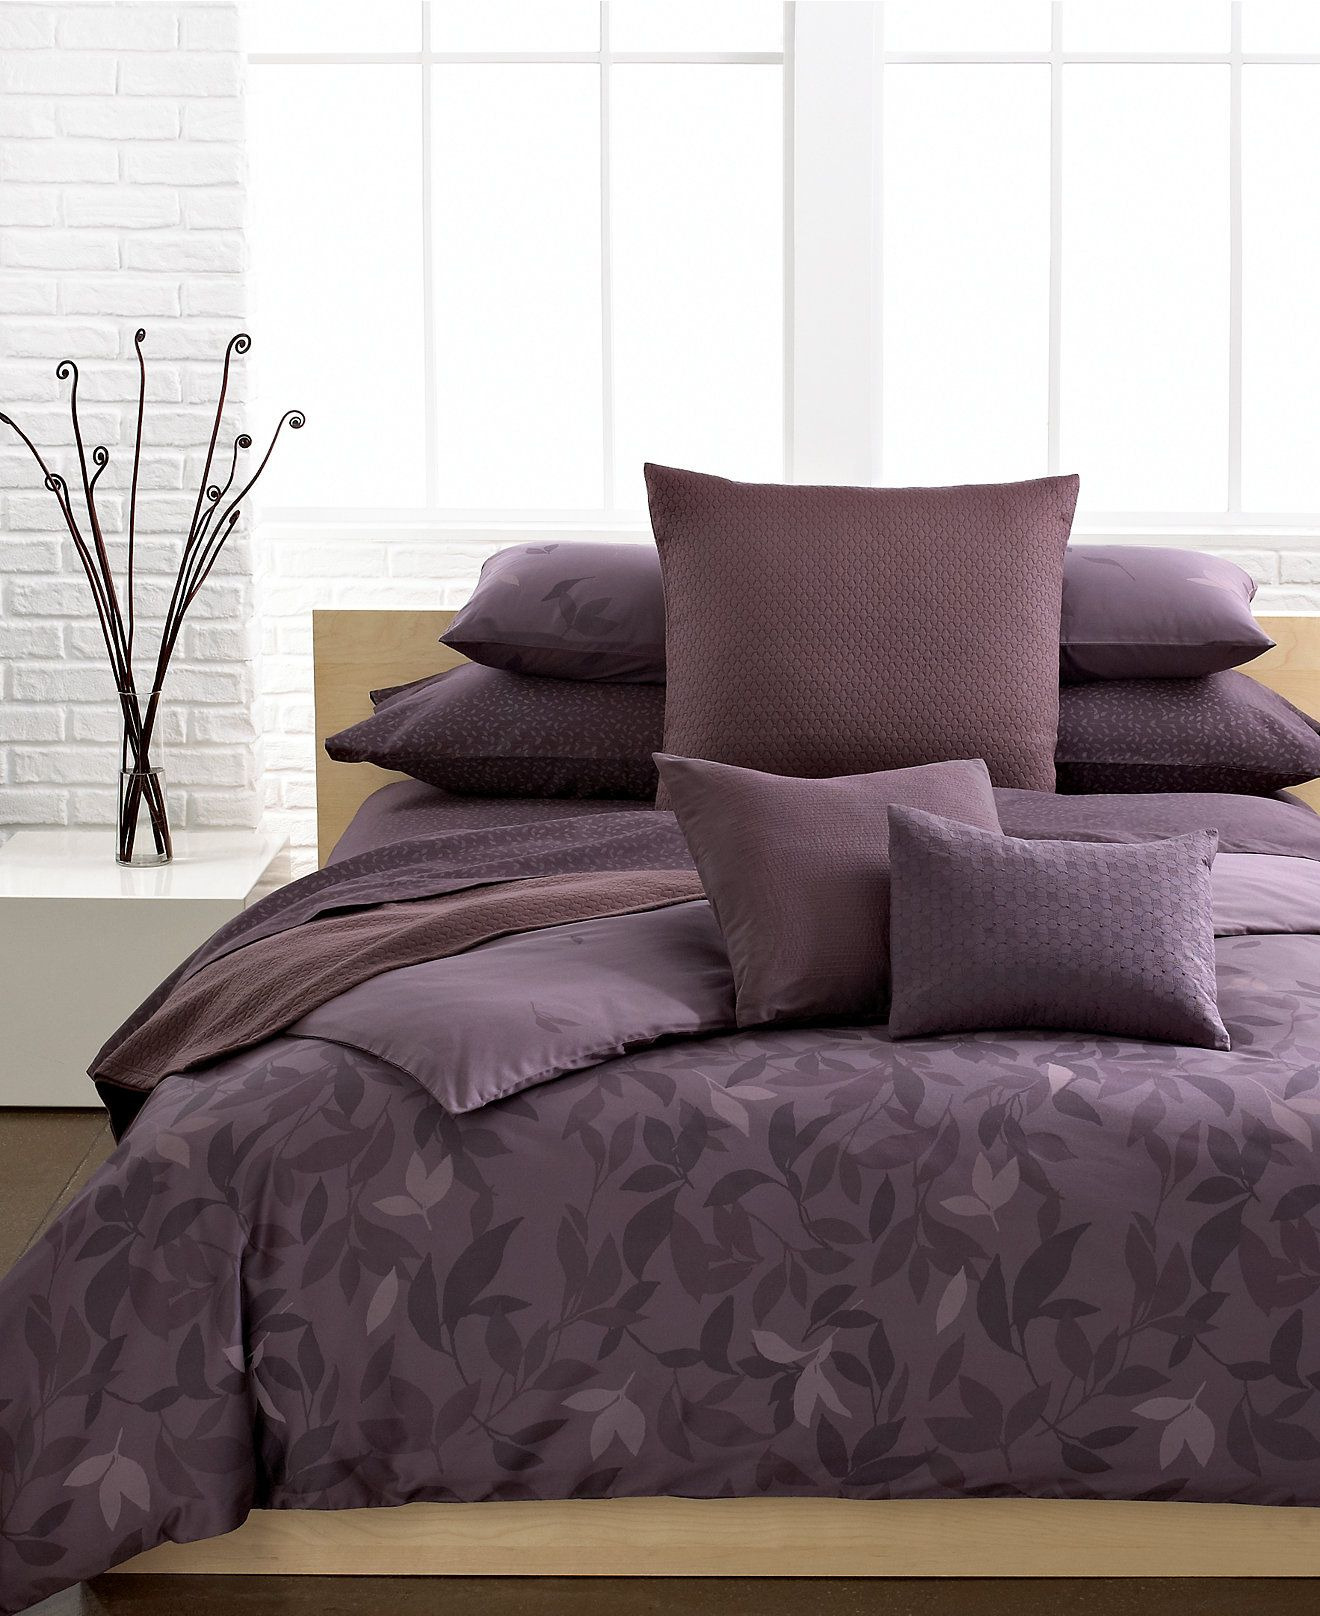 Bed And Bath Bettwäsche Calvin Klein Elm Comforter And Duvet Cover Sets Bedding